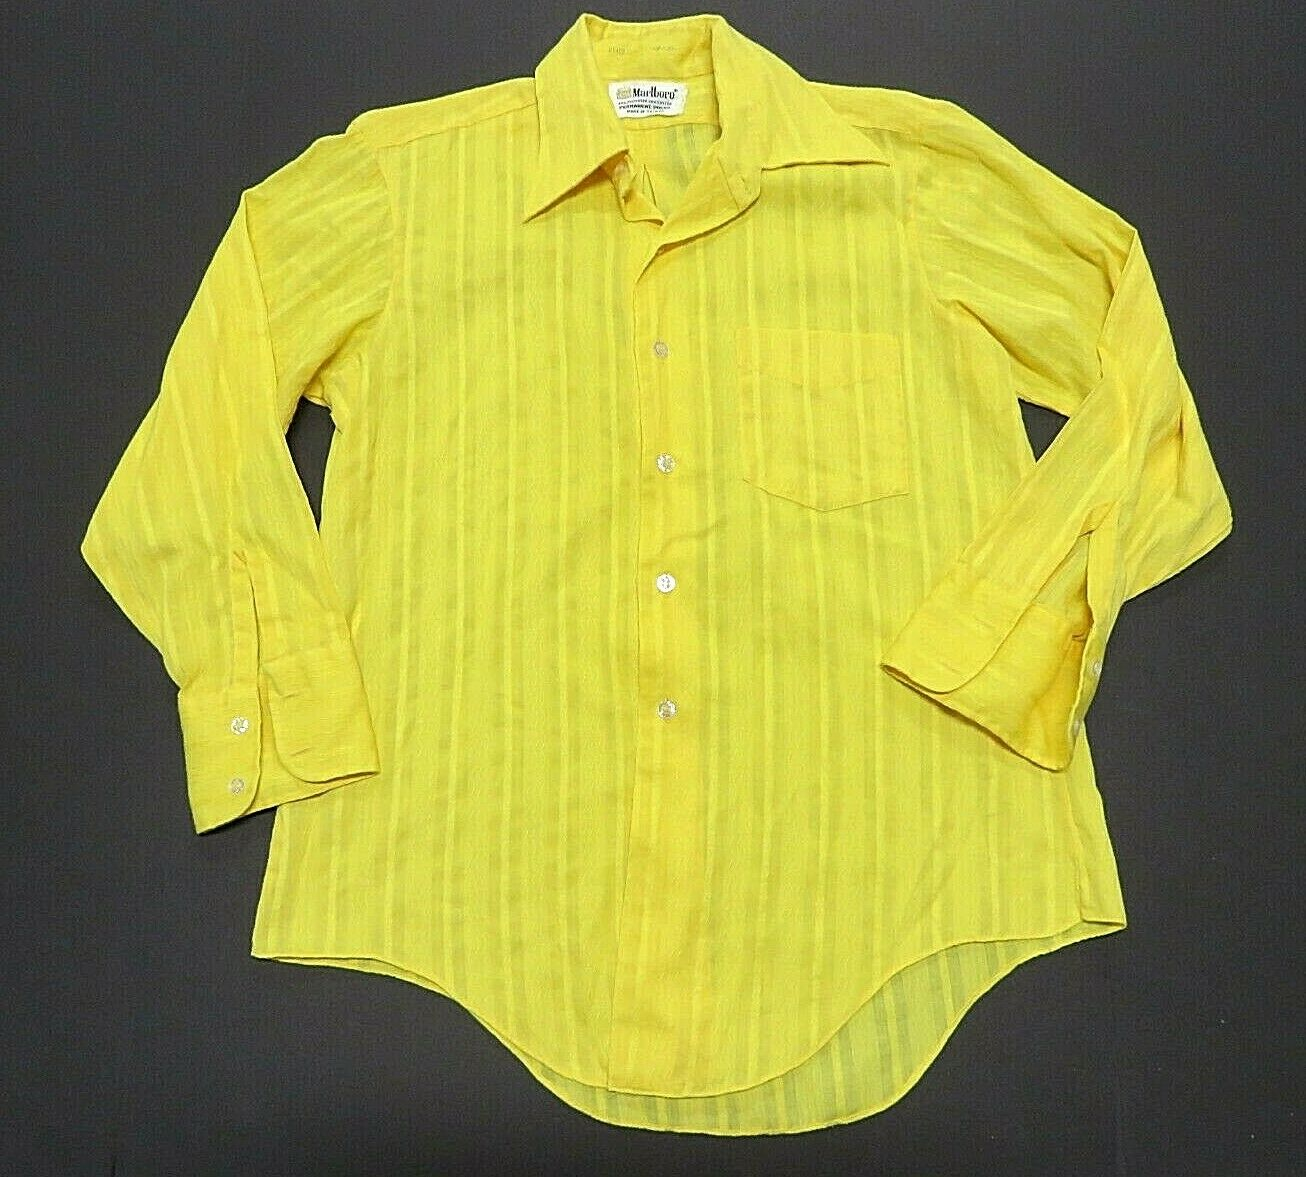 Marlbgold Yellow Button Up Long Sleeve Shirt Men's Size 15-32 Made in Taiwan